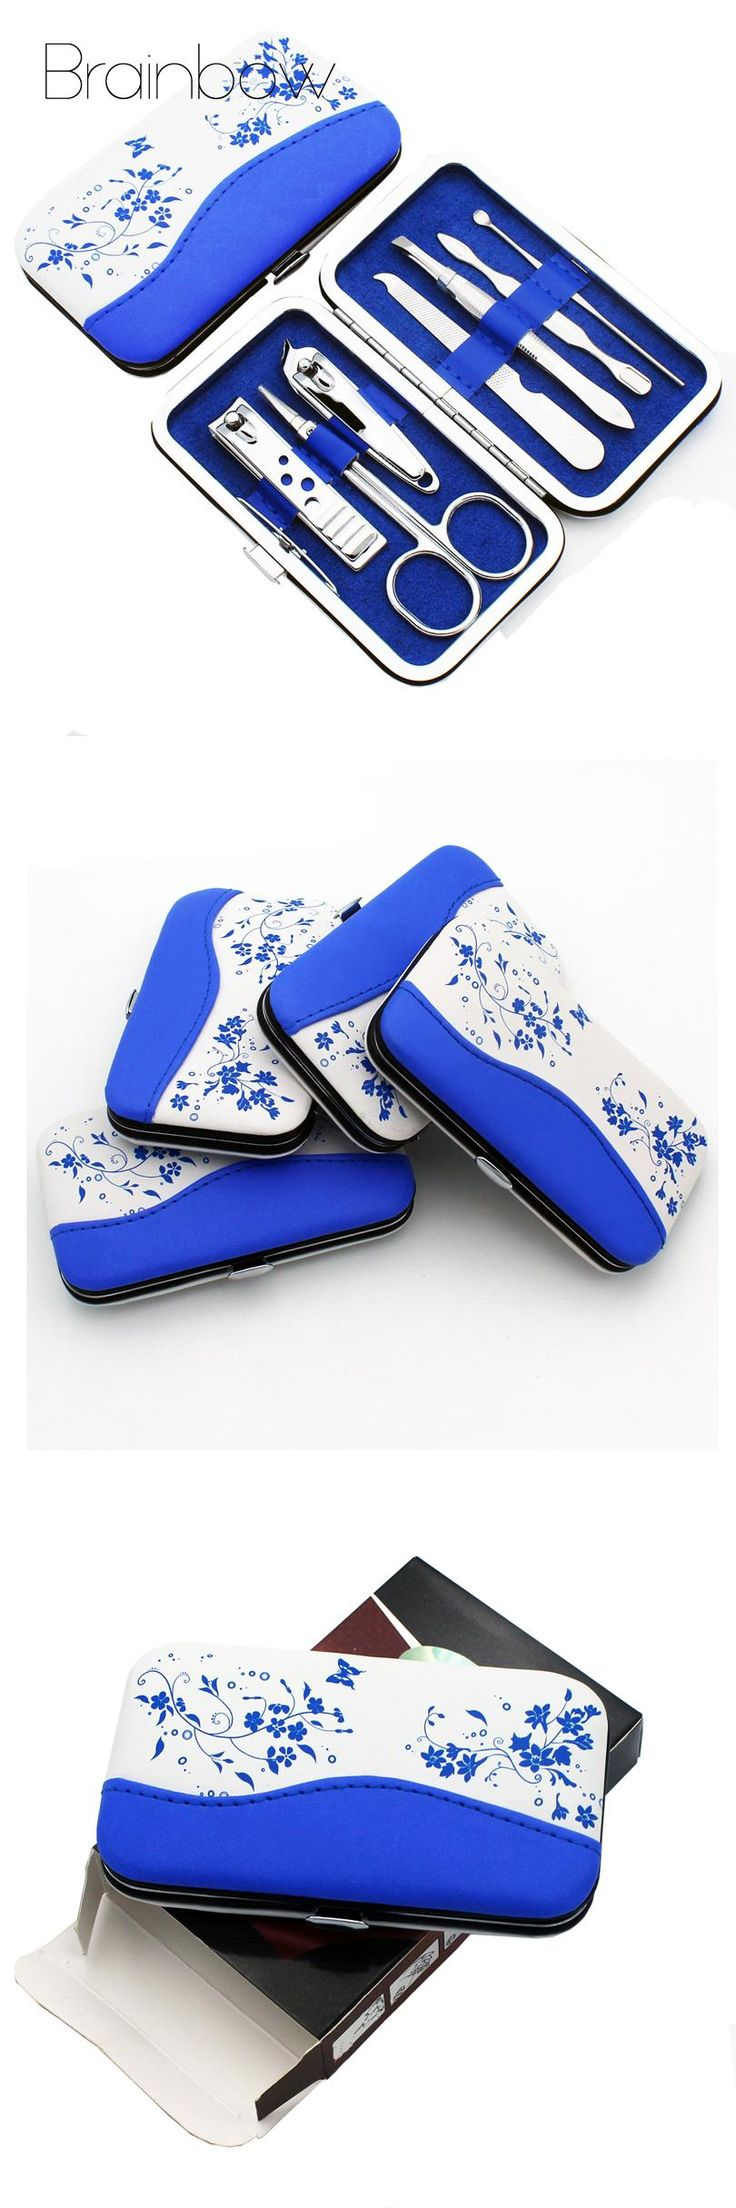 [Visit to Buy] Blue and White Porcelain Case+7 in 1 pc Utility Manicure Set Tools Nail Clipper Kit Nail Care Set Pedicure Scissor Tweezer #Advertisement